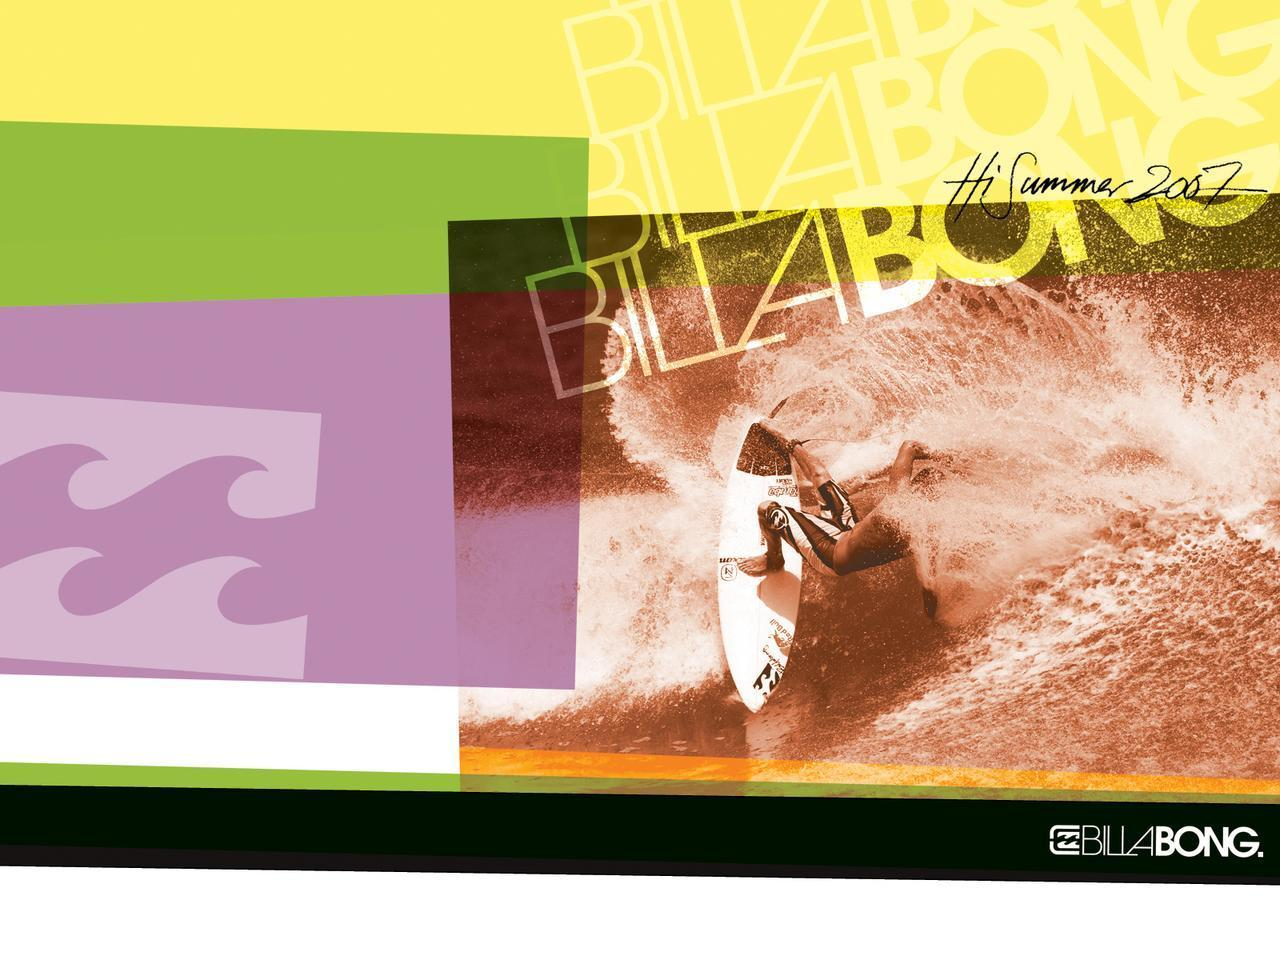 Billabong Billabong 1280x960